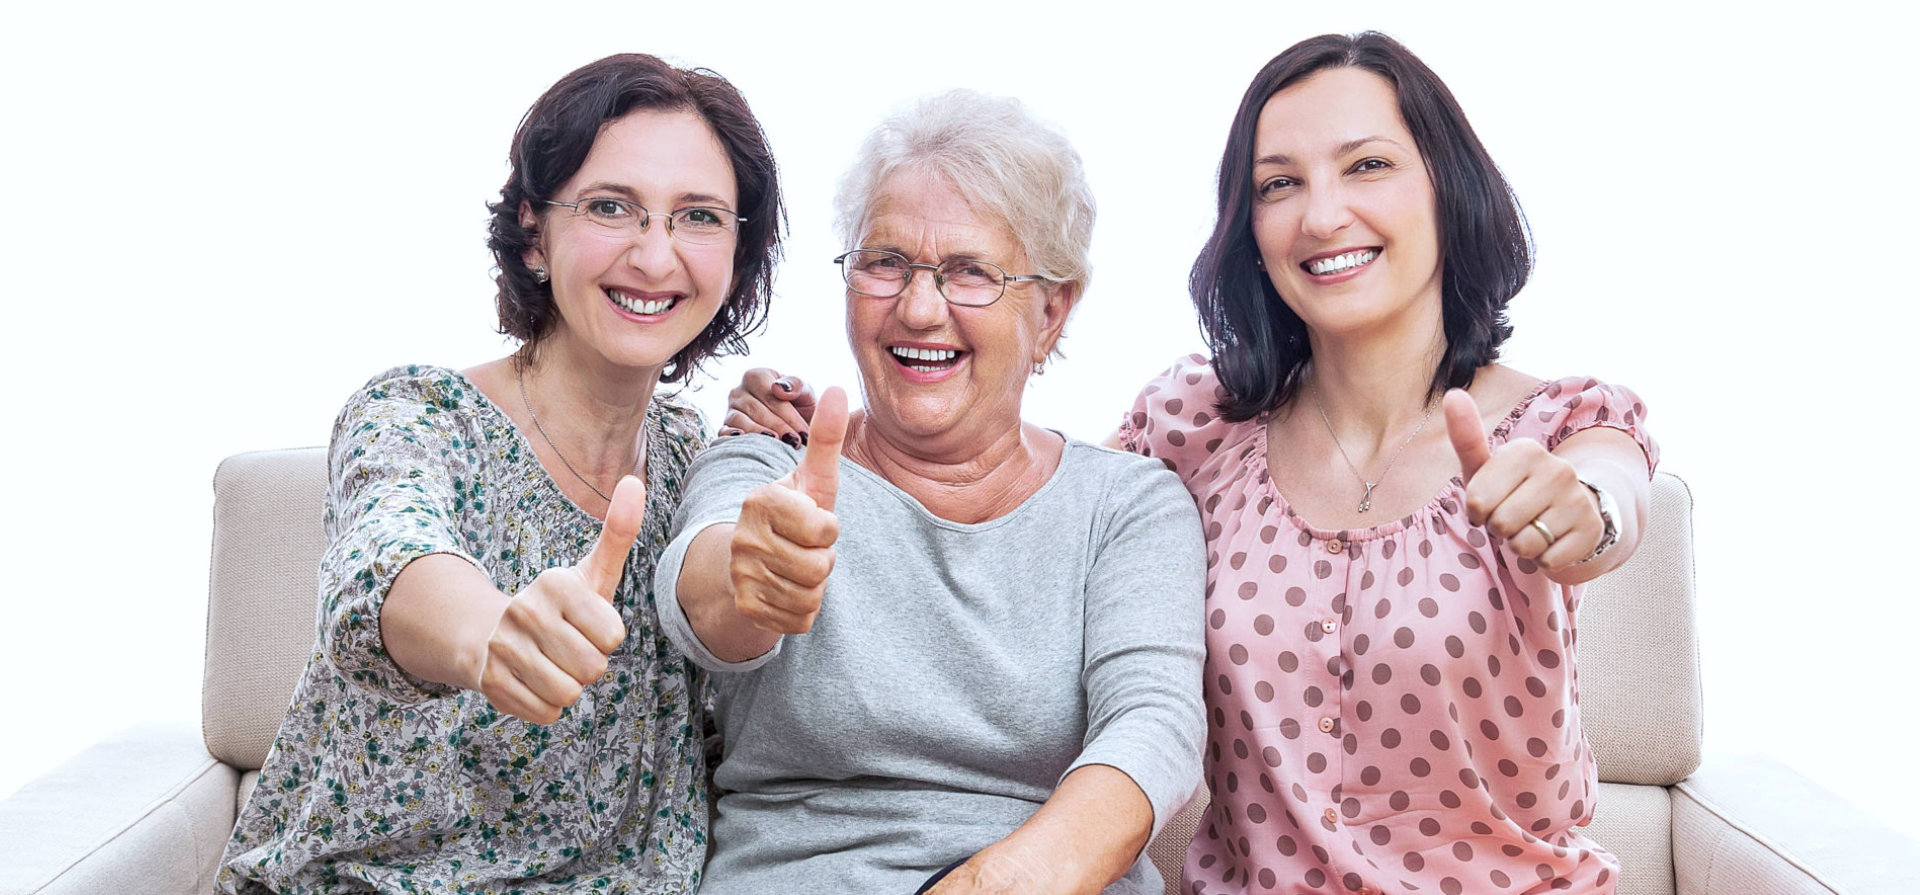 caregivers and an old patient smiling and giving an ok sign in front of camera